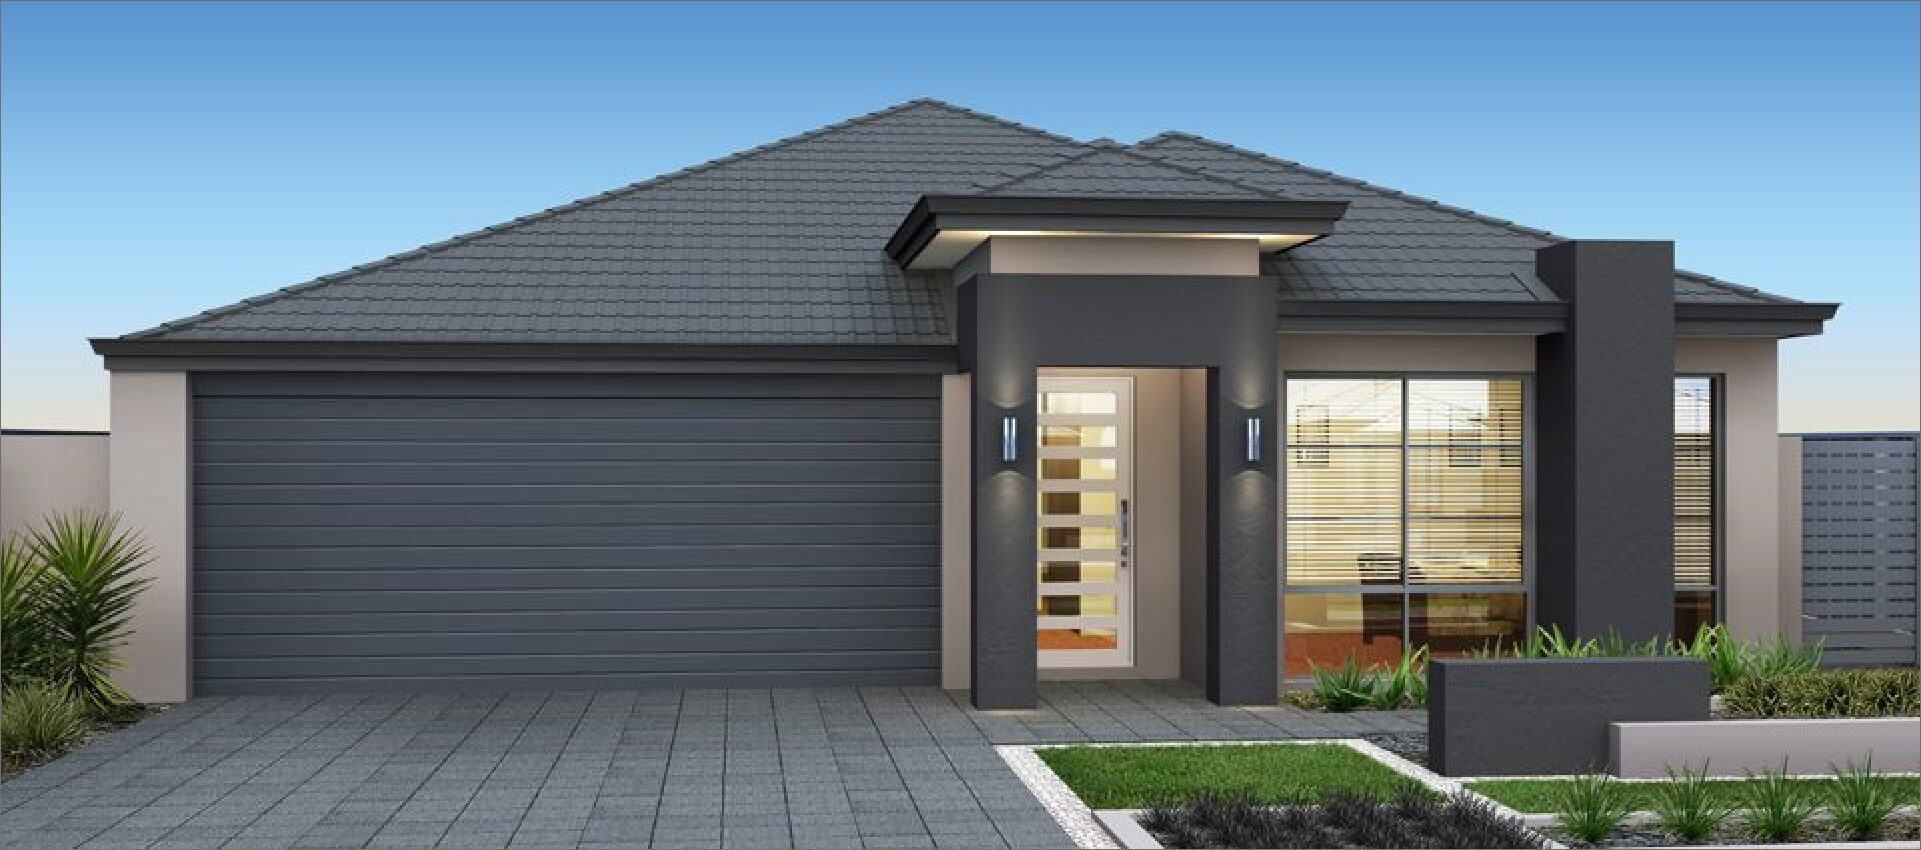 The Independence Home Design